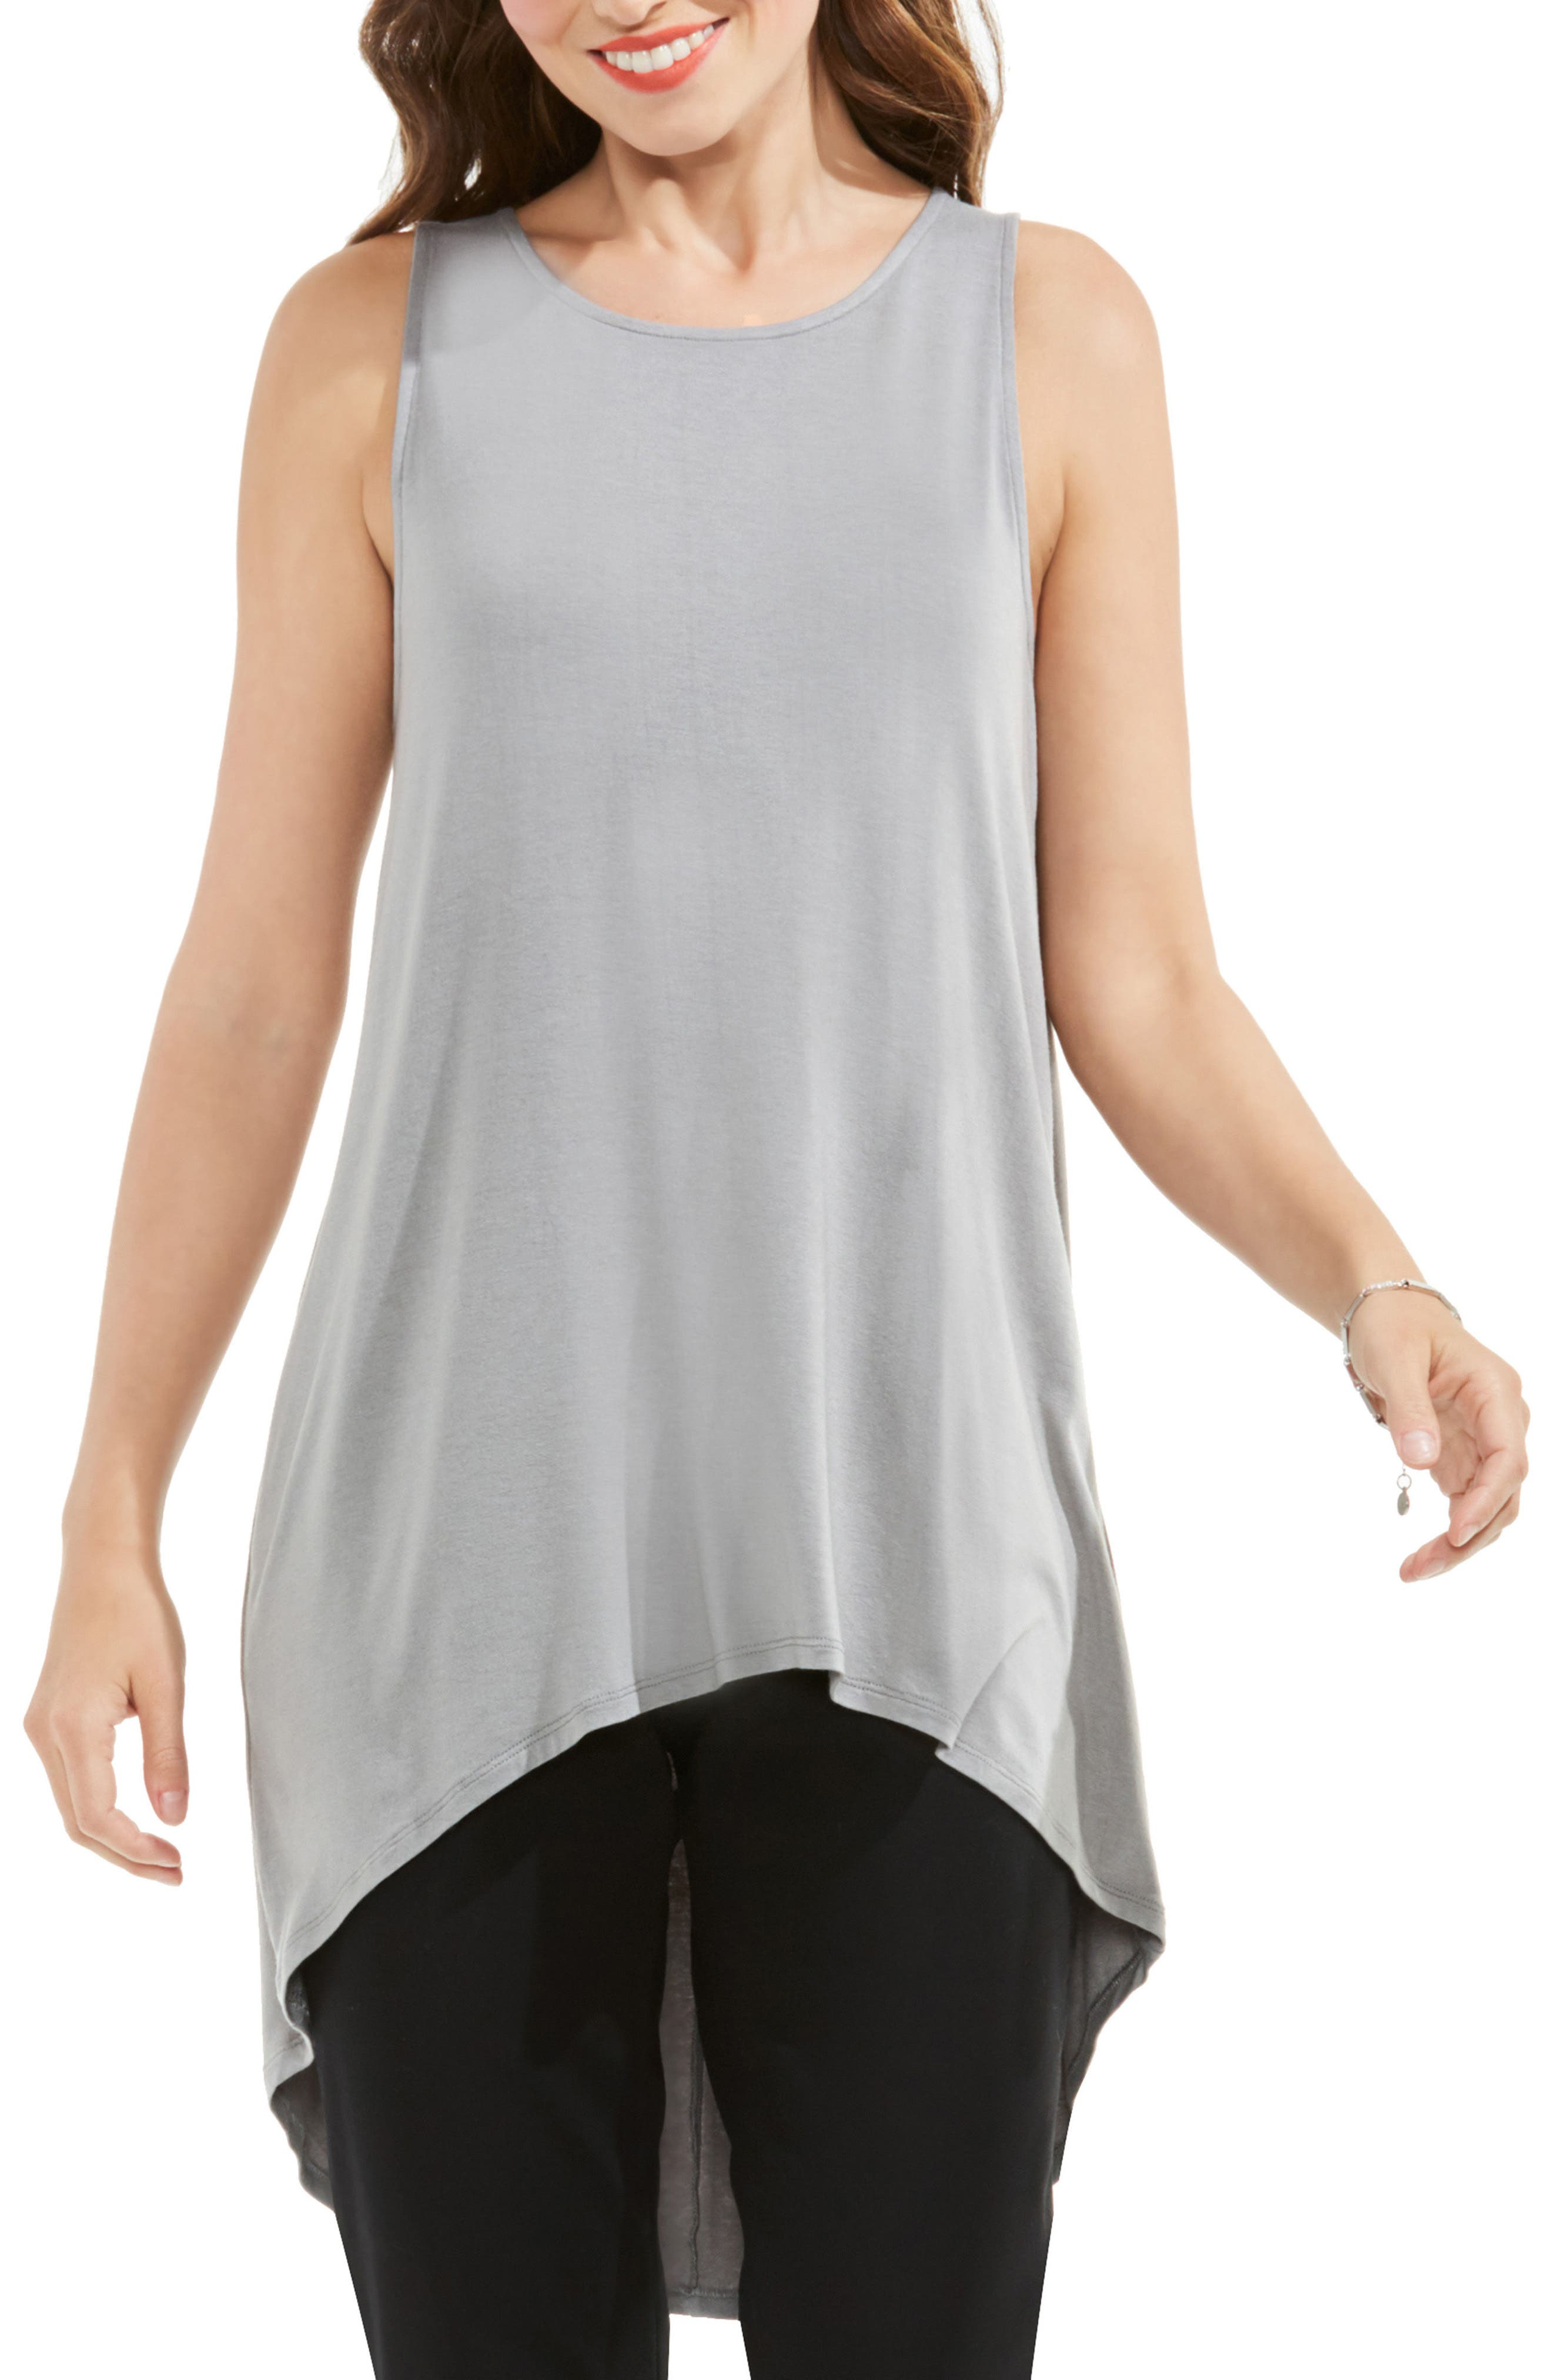 Alternate Image 1 Selected - Vince Camuto Sleeveless High/Low Top